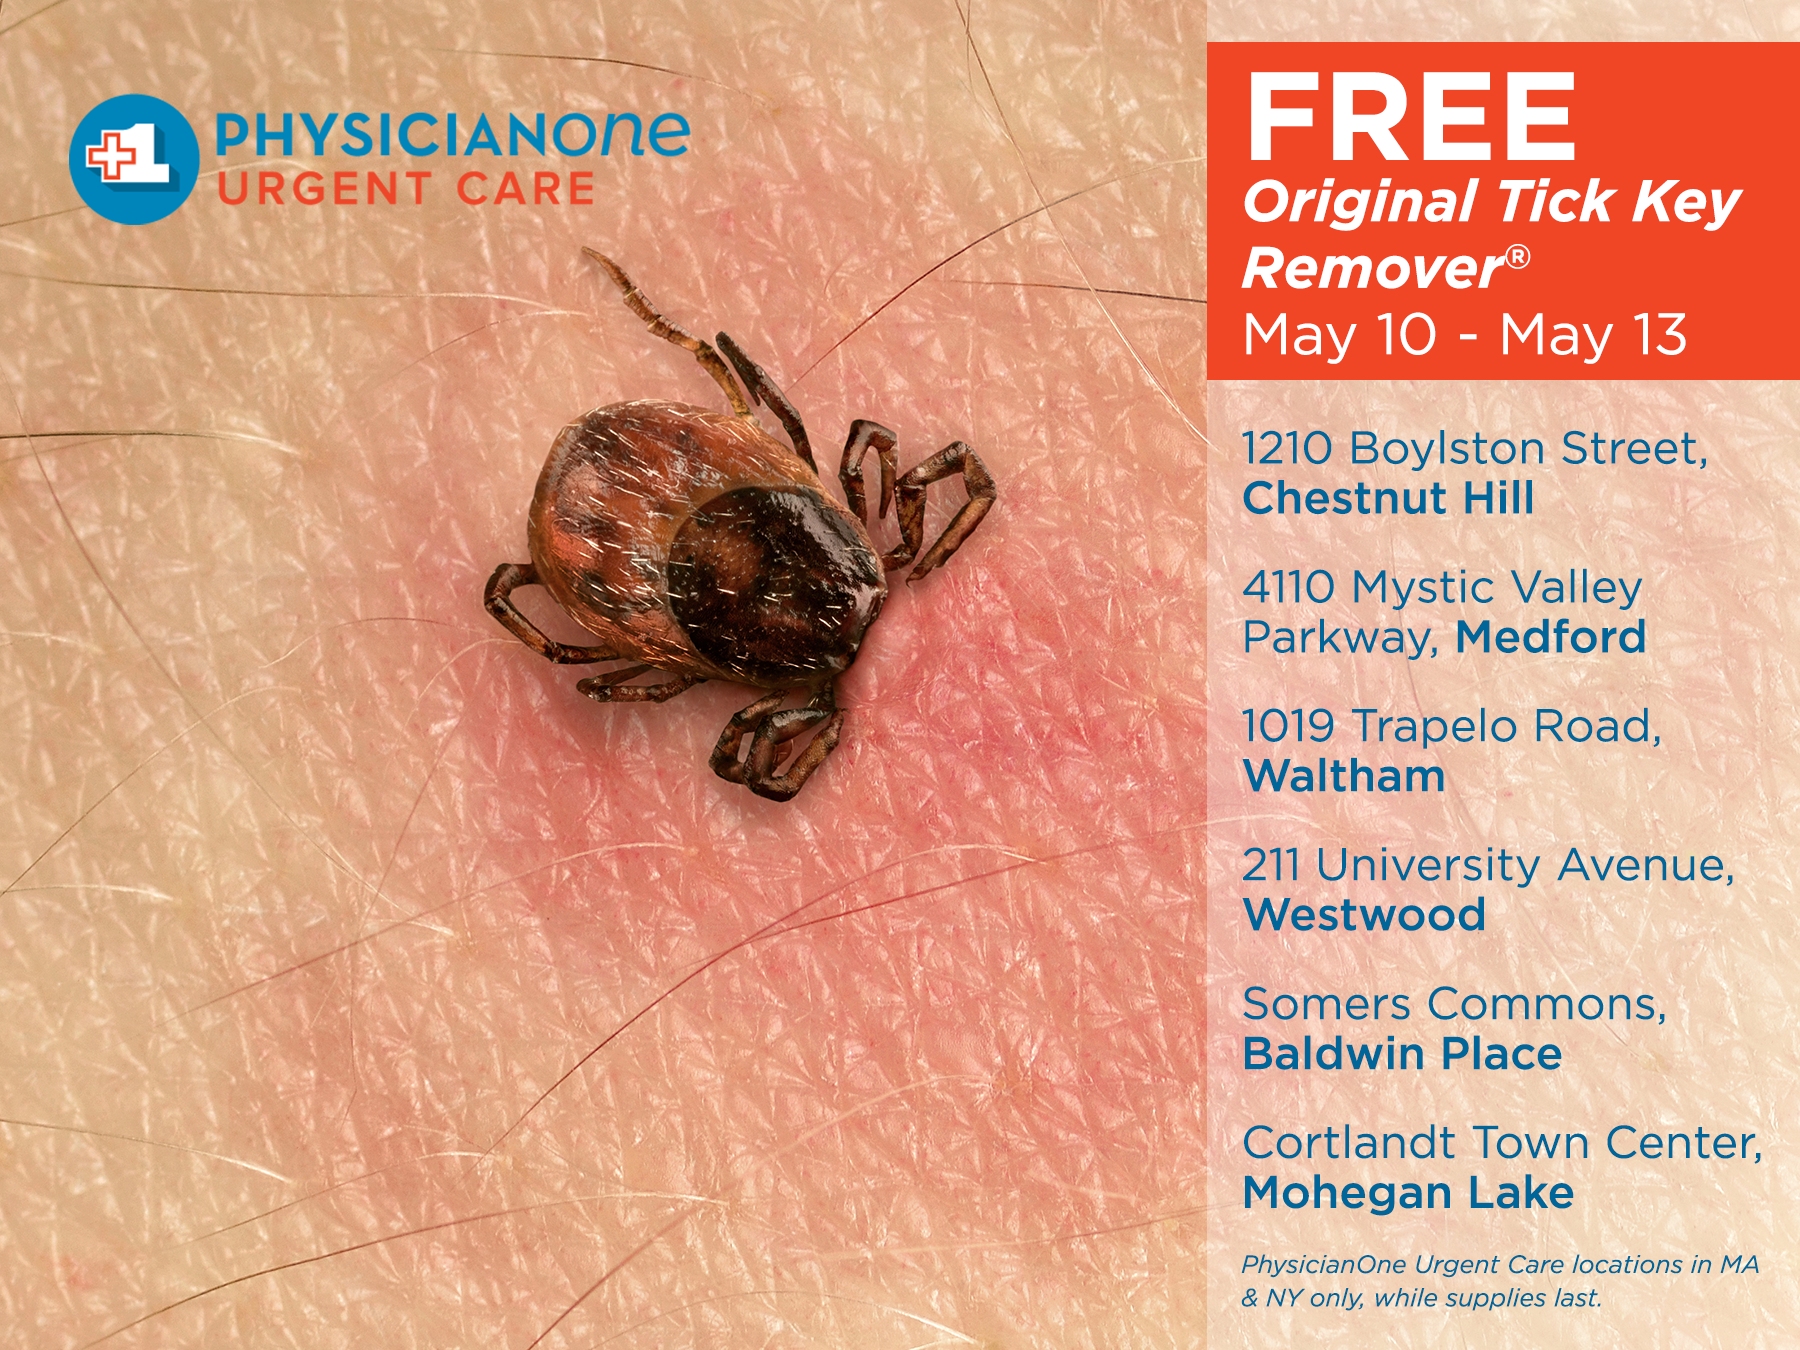 free tick removers in massachusetts and westchester county